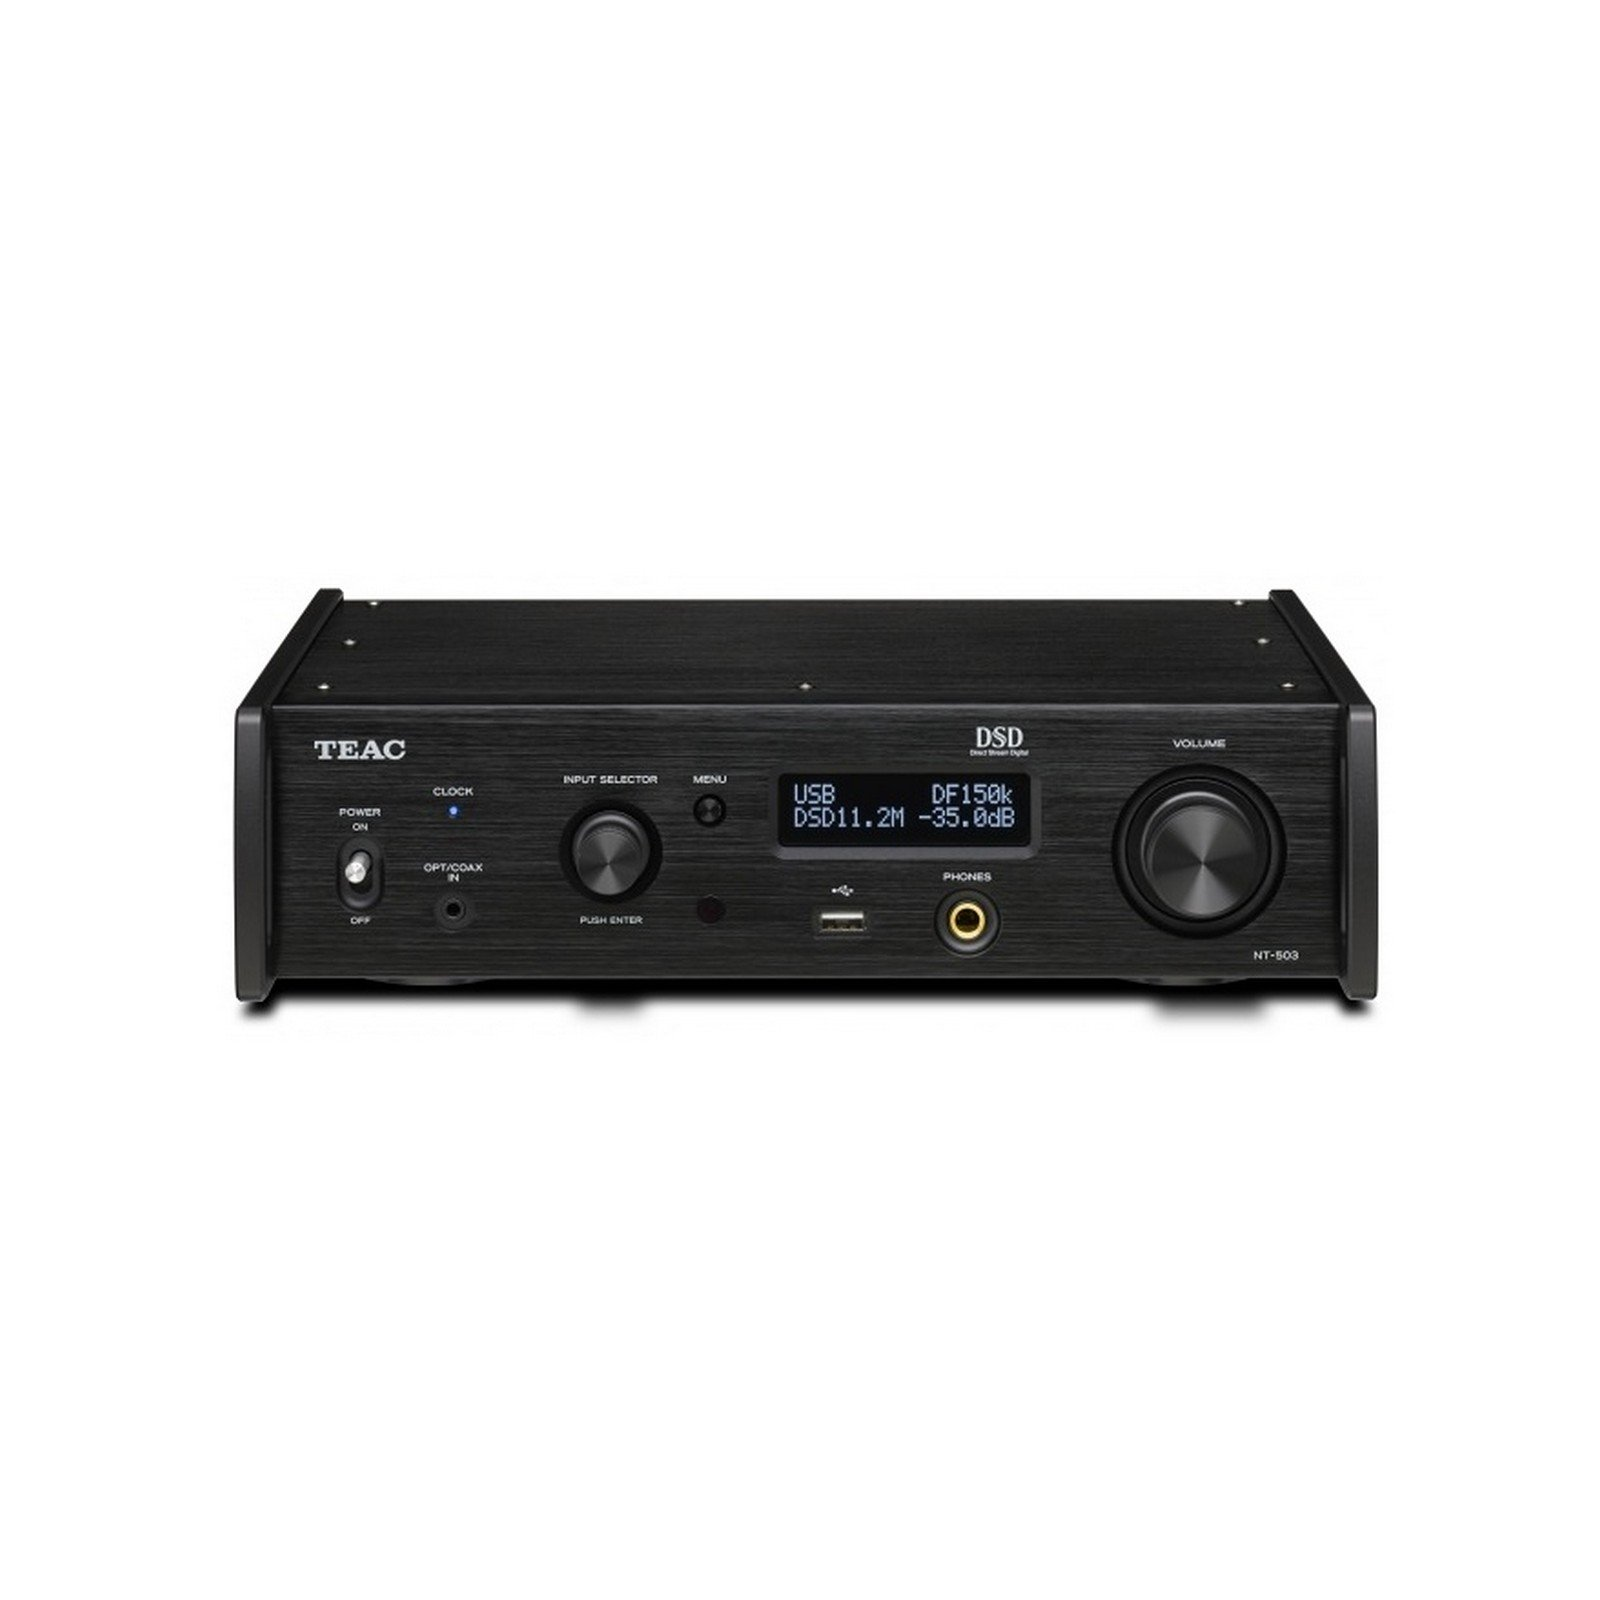 Teac NT-503-B | Dual Monaural USB DAC Bluetooth Network Player Black by Teac (Image #1)